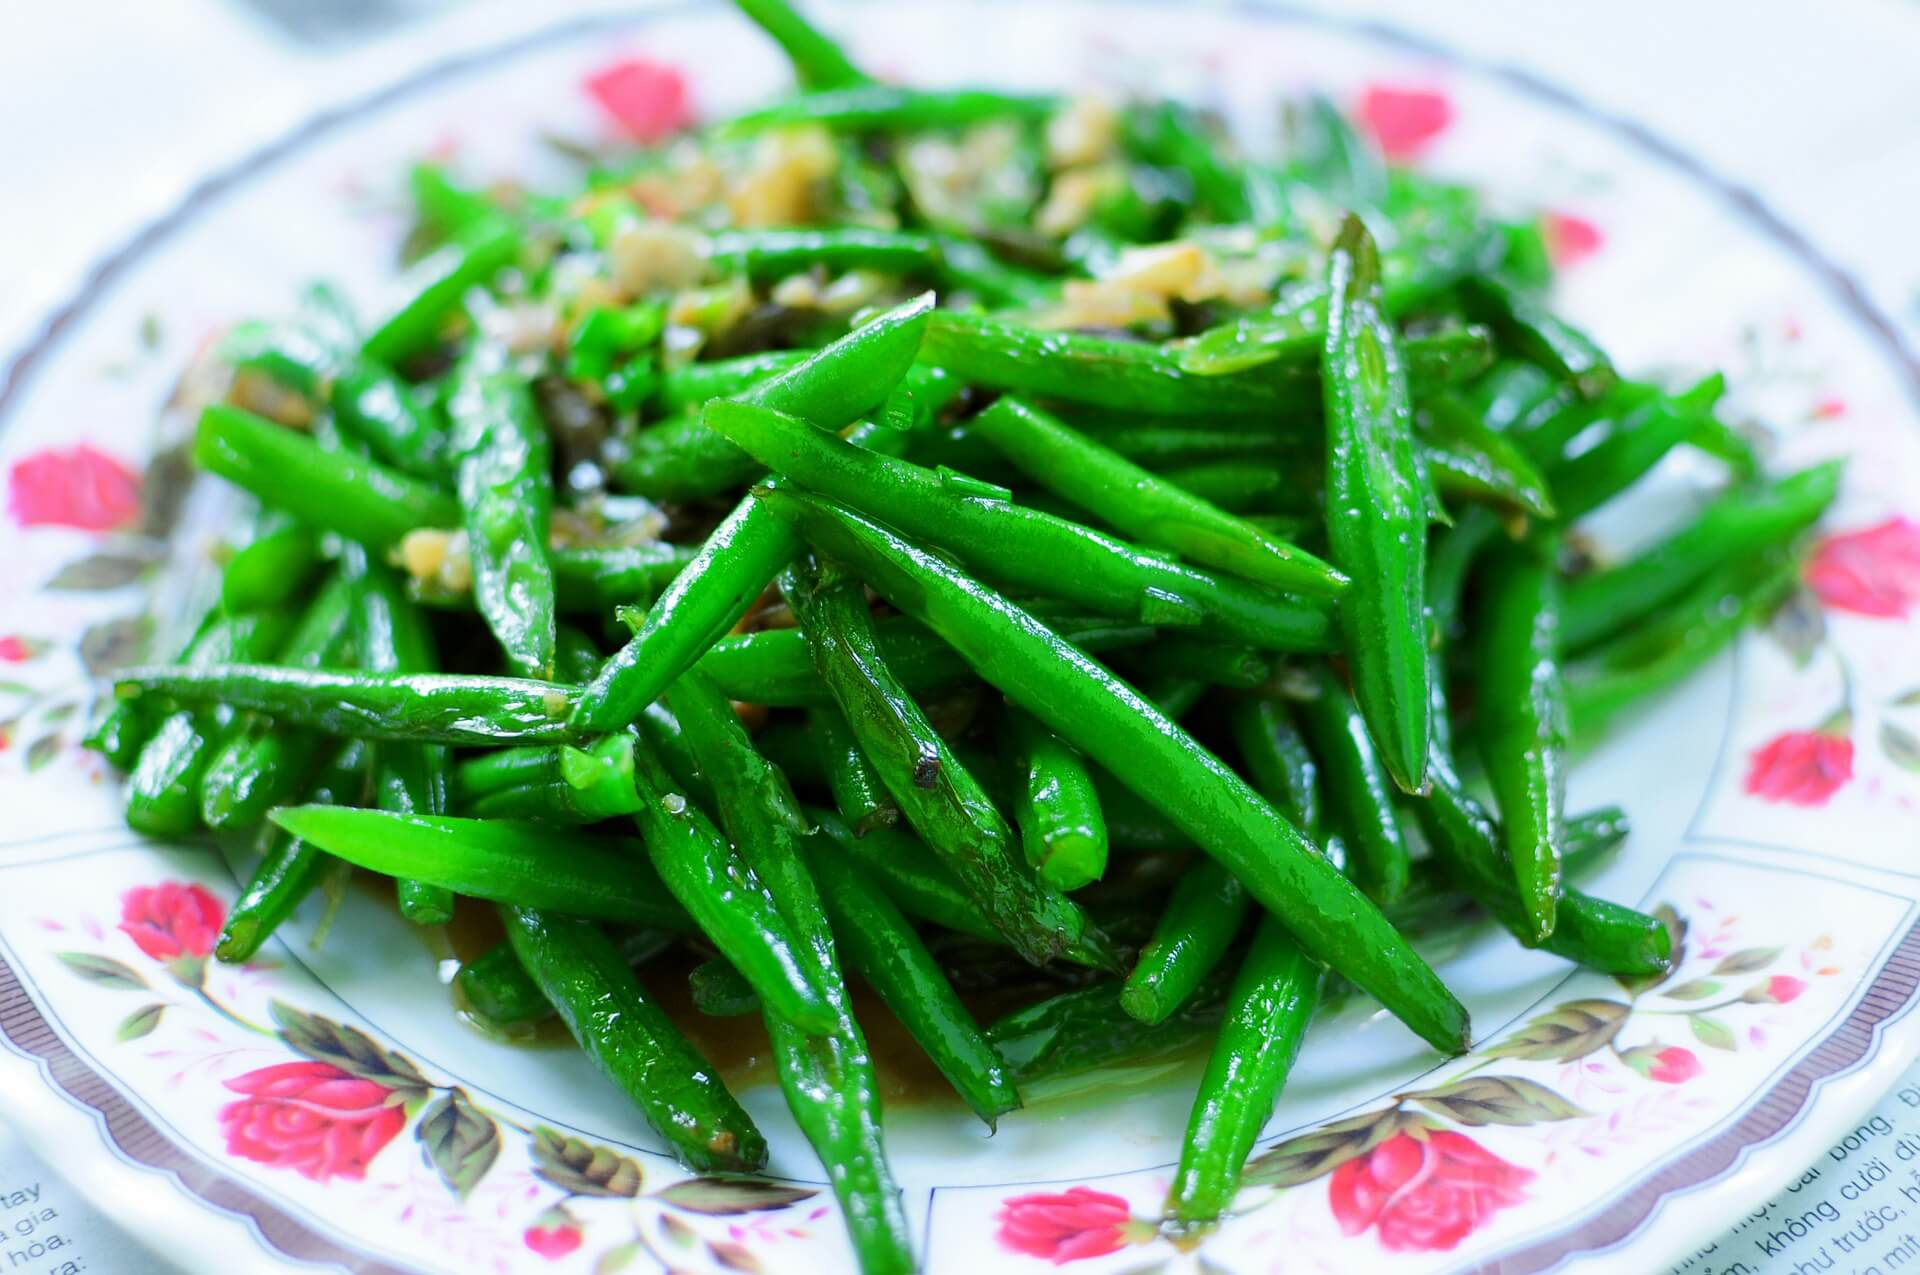 TOTS Family, Parenting, Kids, Food, Crafts, DIY and Travel green-bean-1443290_1920 Sweet Maple Green Beans Food Main Dish Miscellaneous Recipes TOTS Family Uncategorized  Green Beans